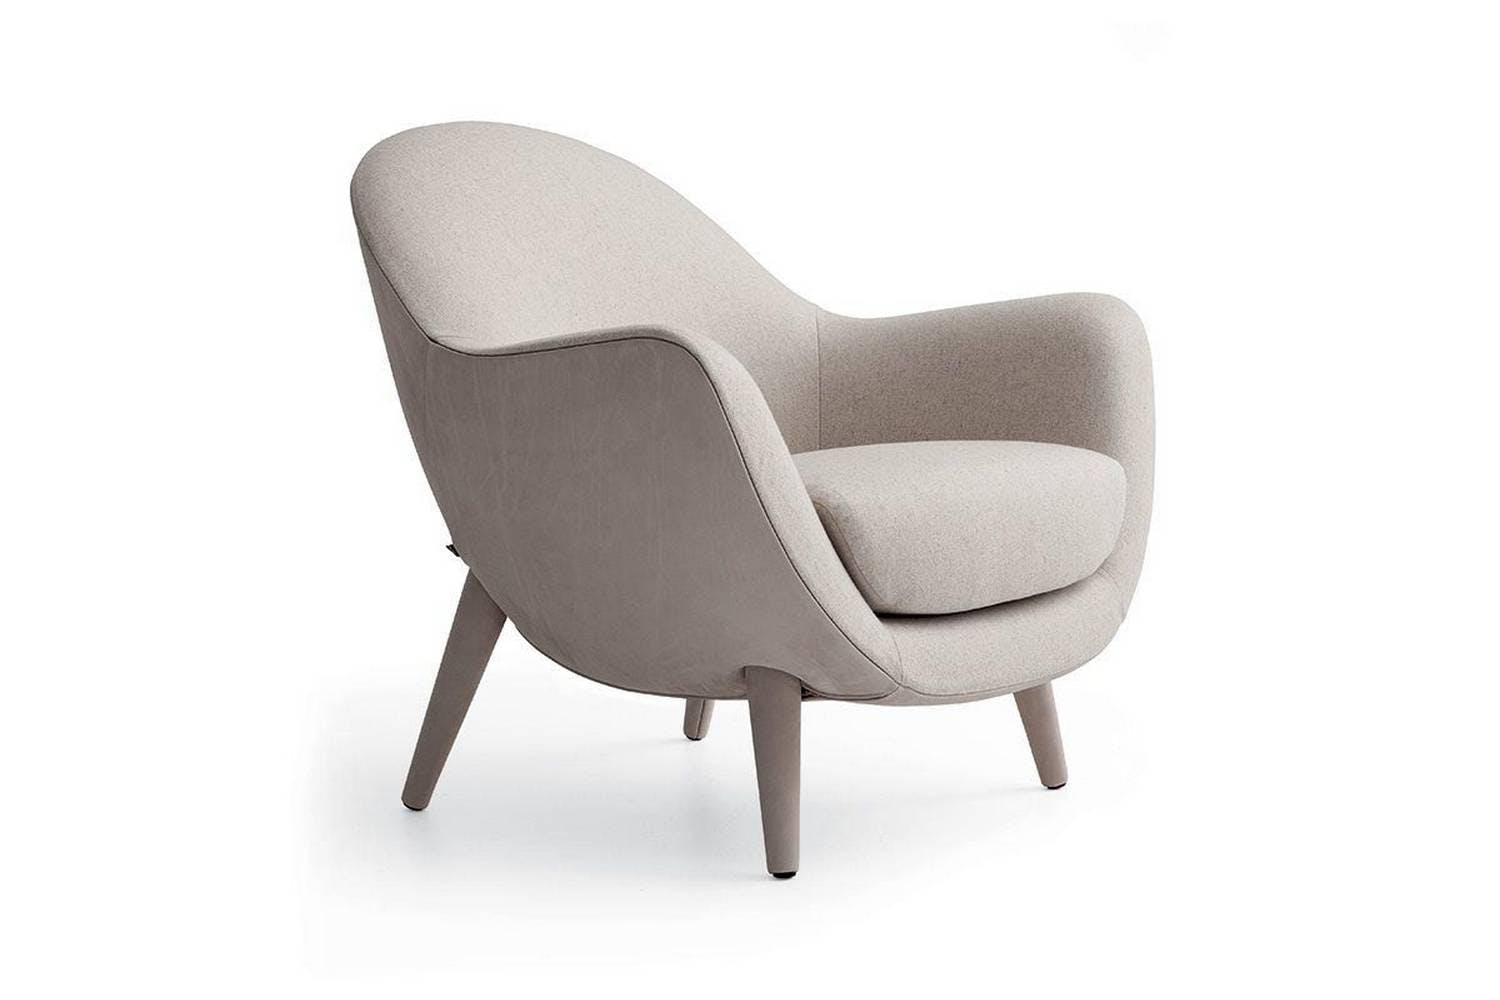 Mad Queen Armchair by Marcel Wanders for Poliform img 0029a 797